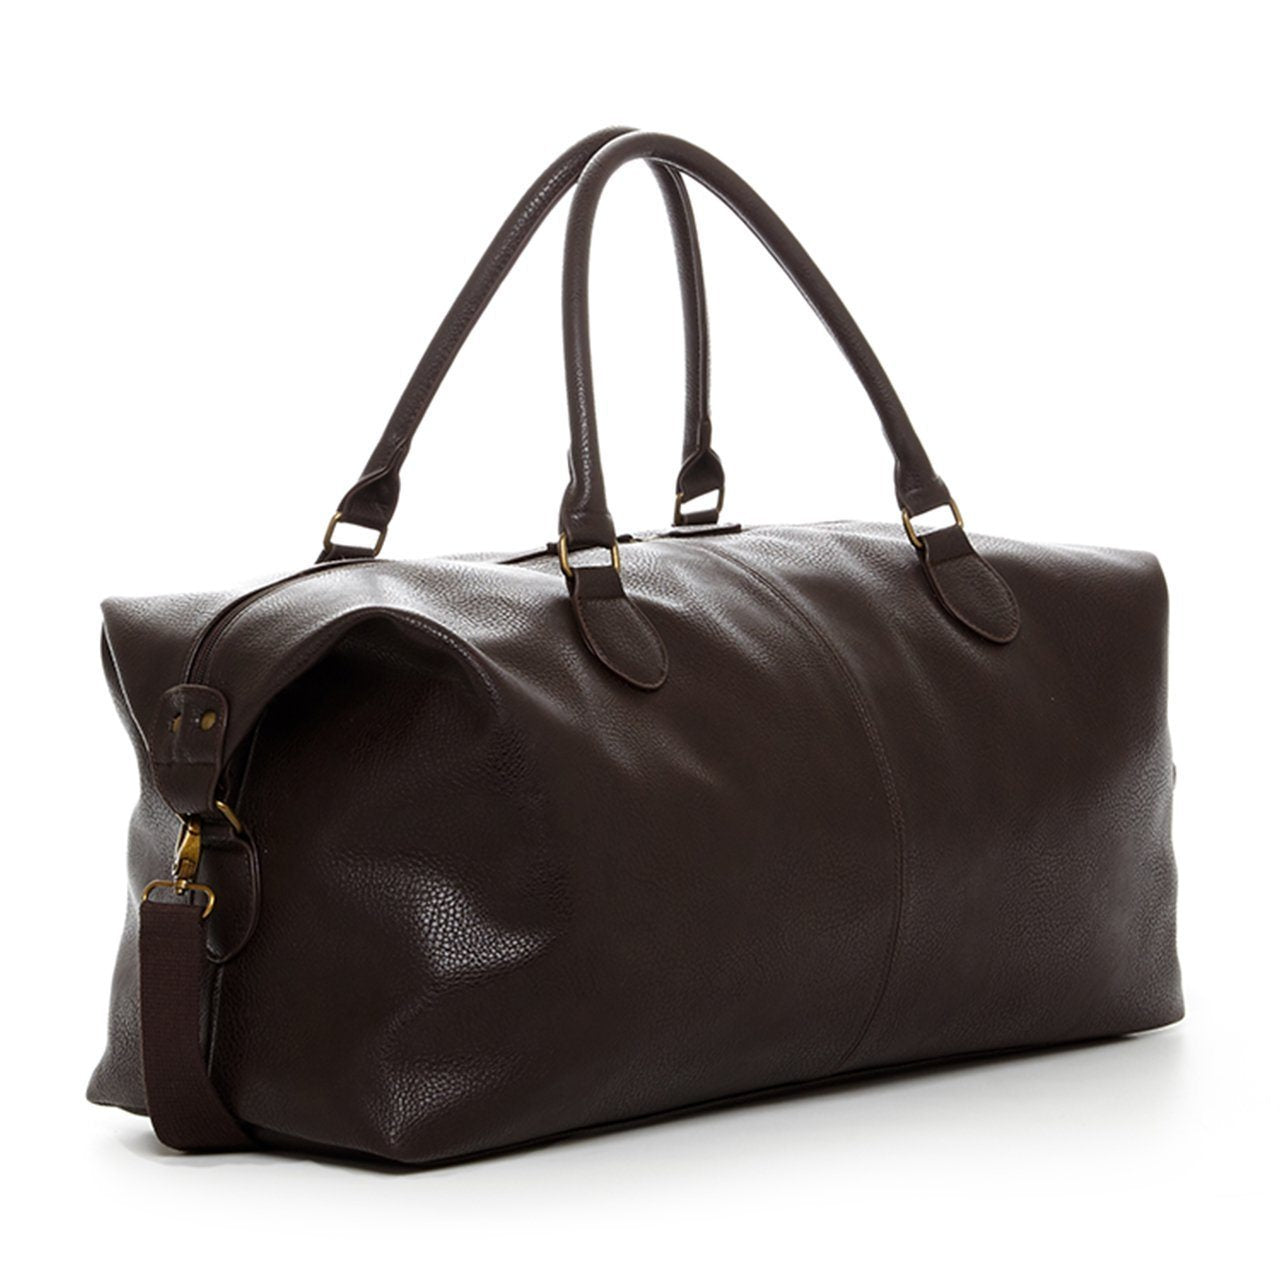 Gunner Brown Vegan Leather Duffle Bag